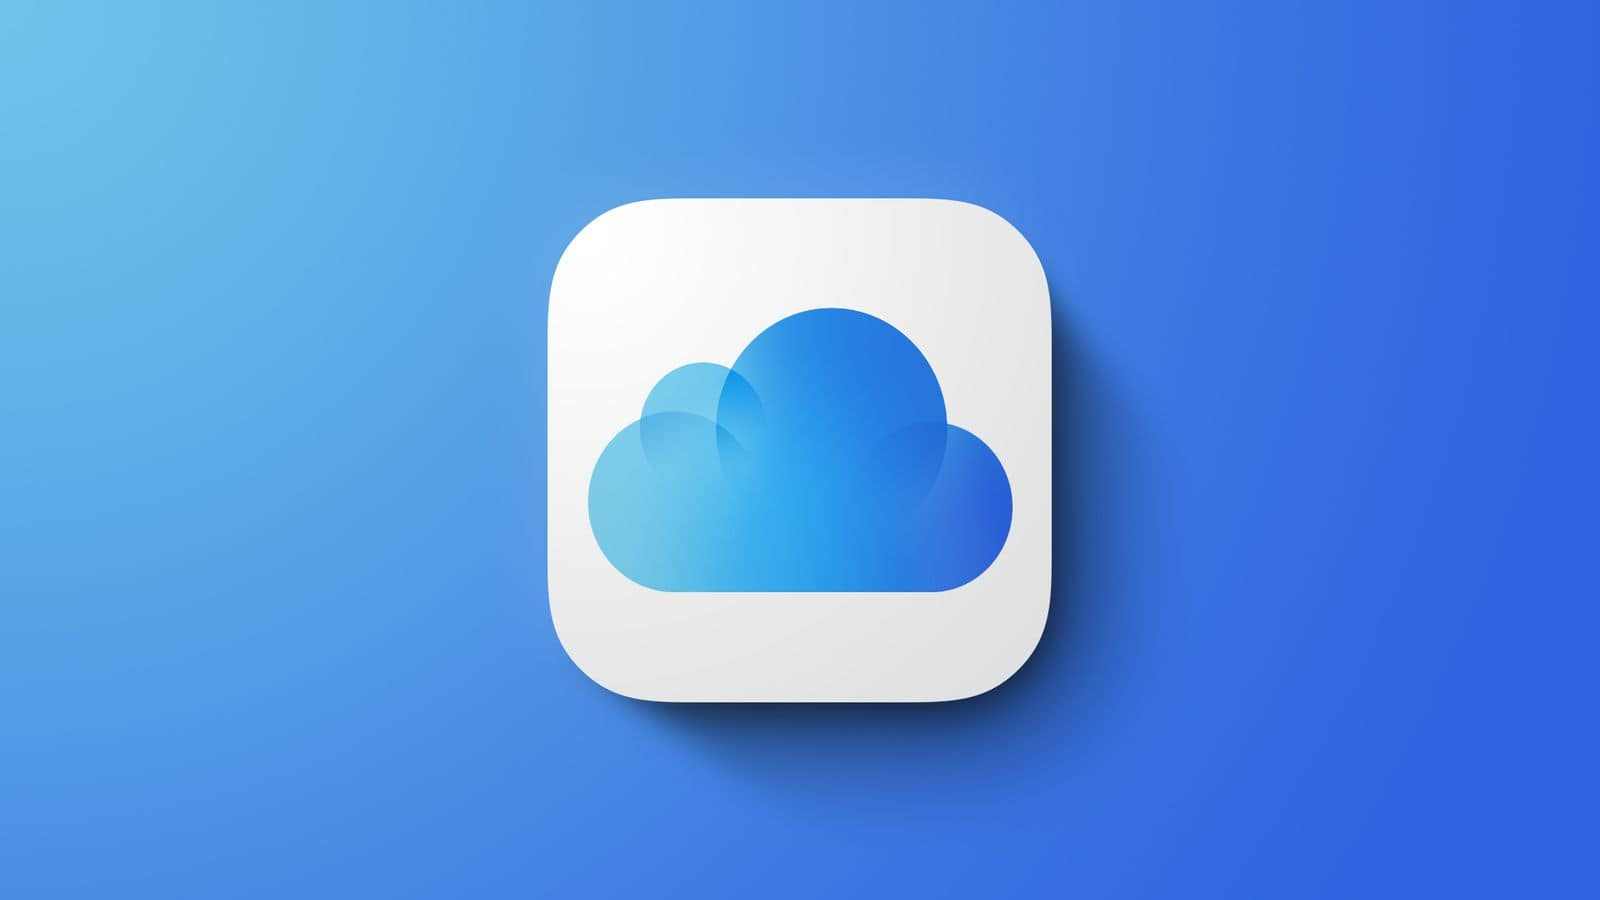 Apple will scan your iCloud for Child abuse images